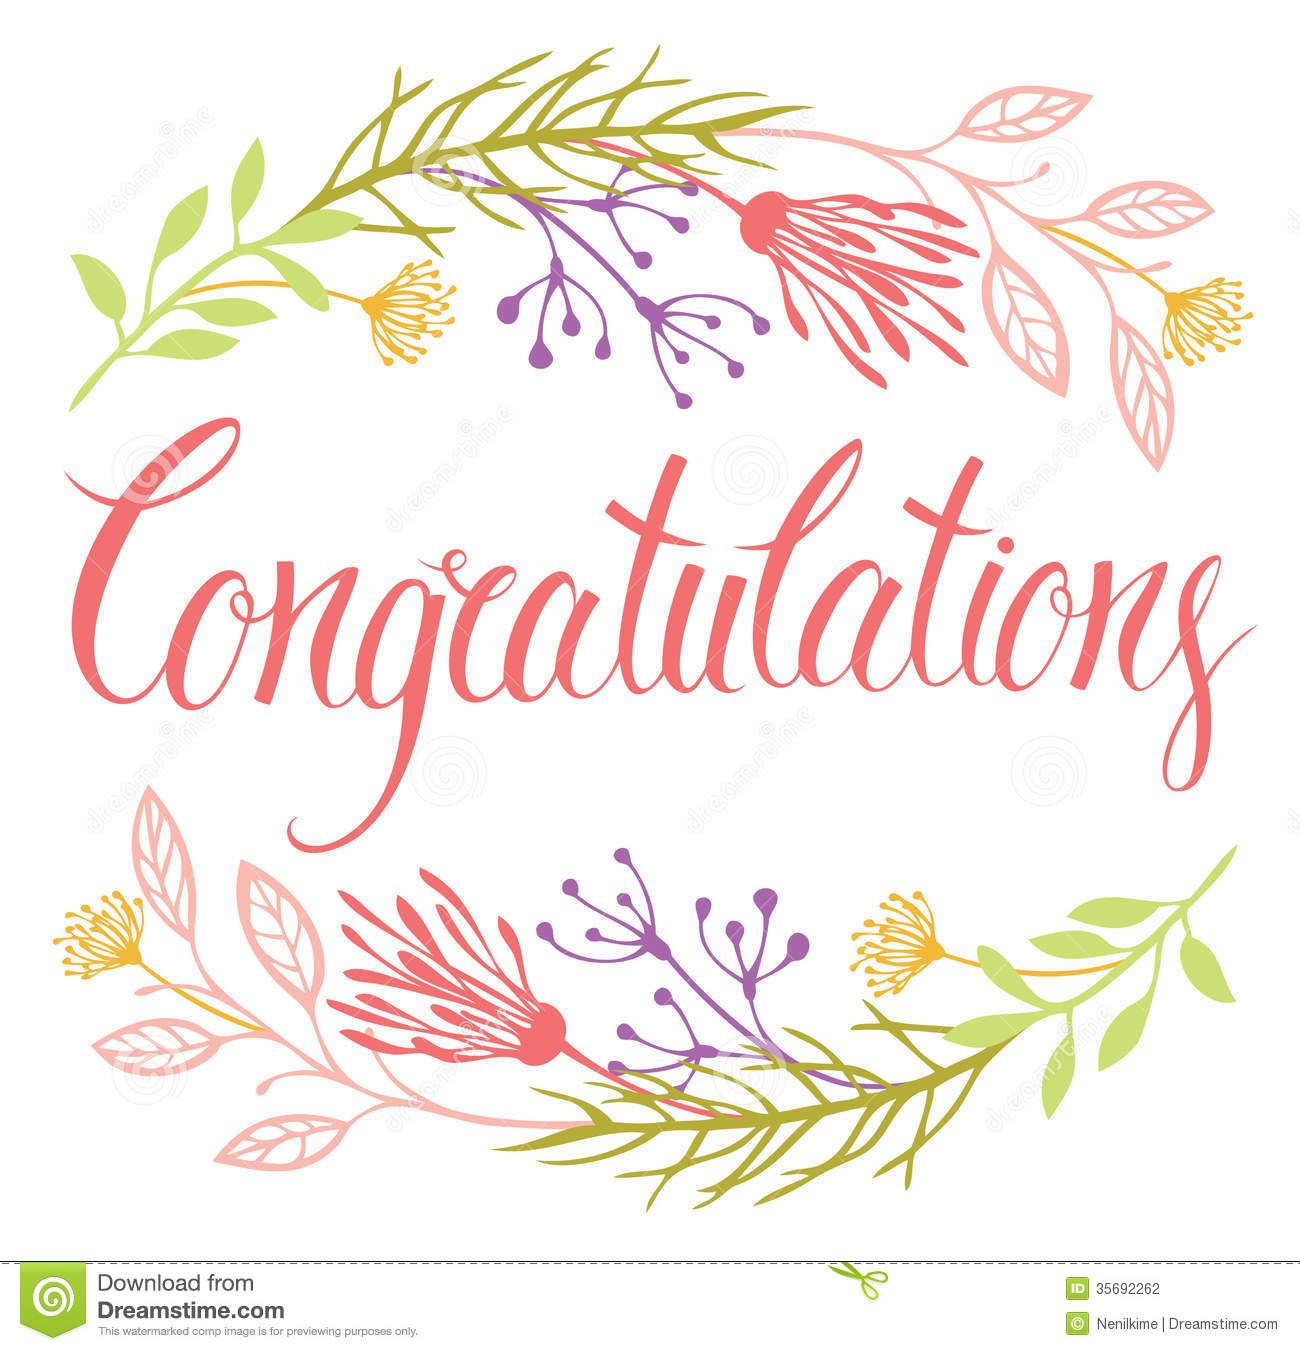 Attractive Congratulations Card With Flowers And Calligraphy   Download From Over 27  Million High Quality Stock Photos  Free Congratulation Cards